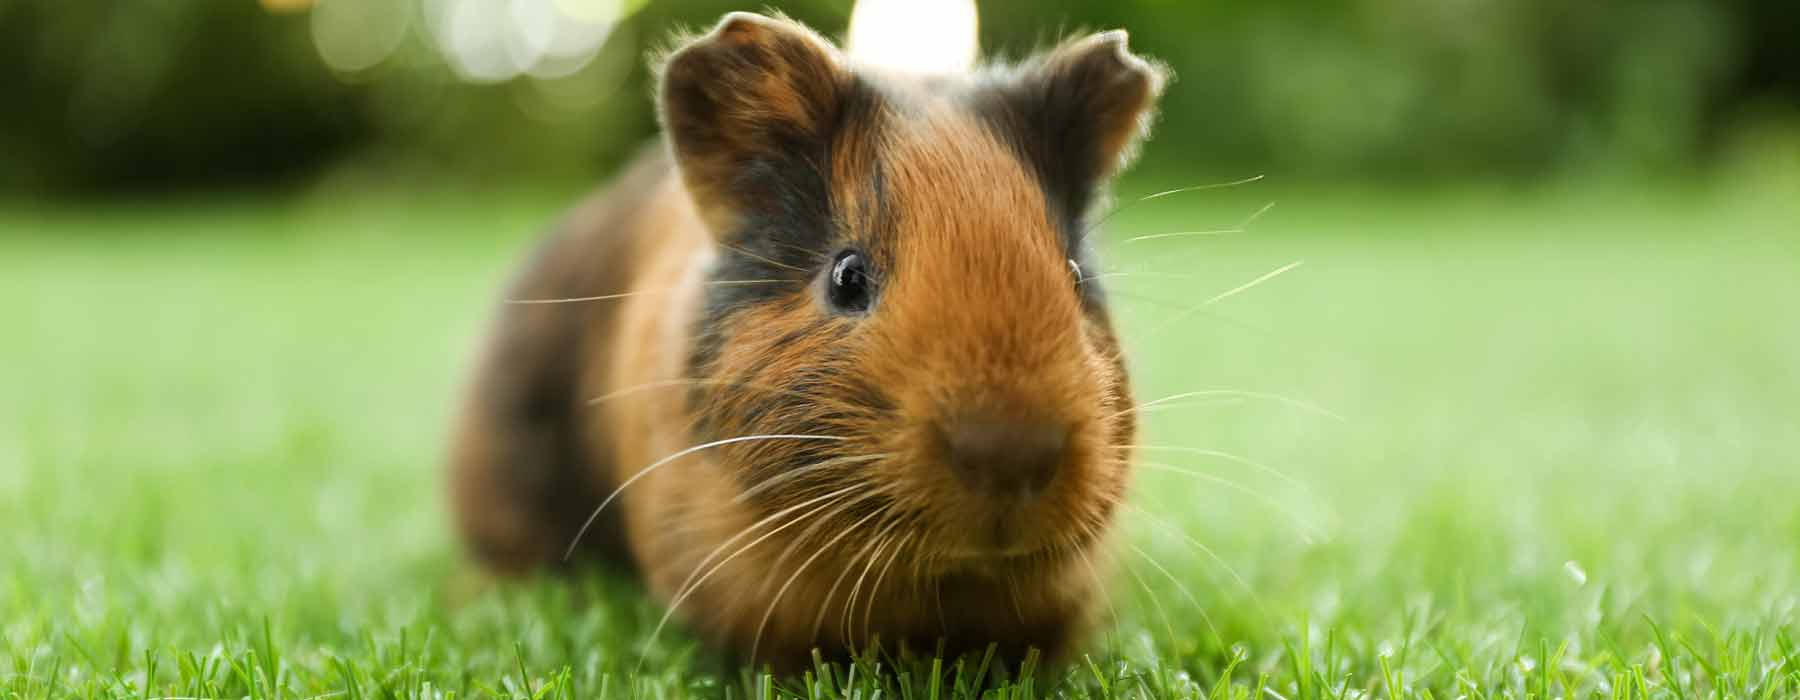 Small tan and black guinea pig on the grass outdoors